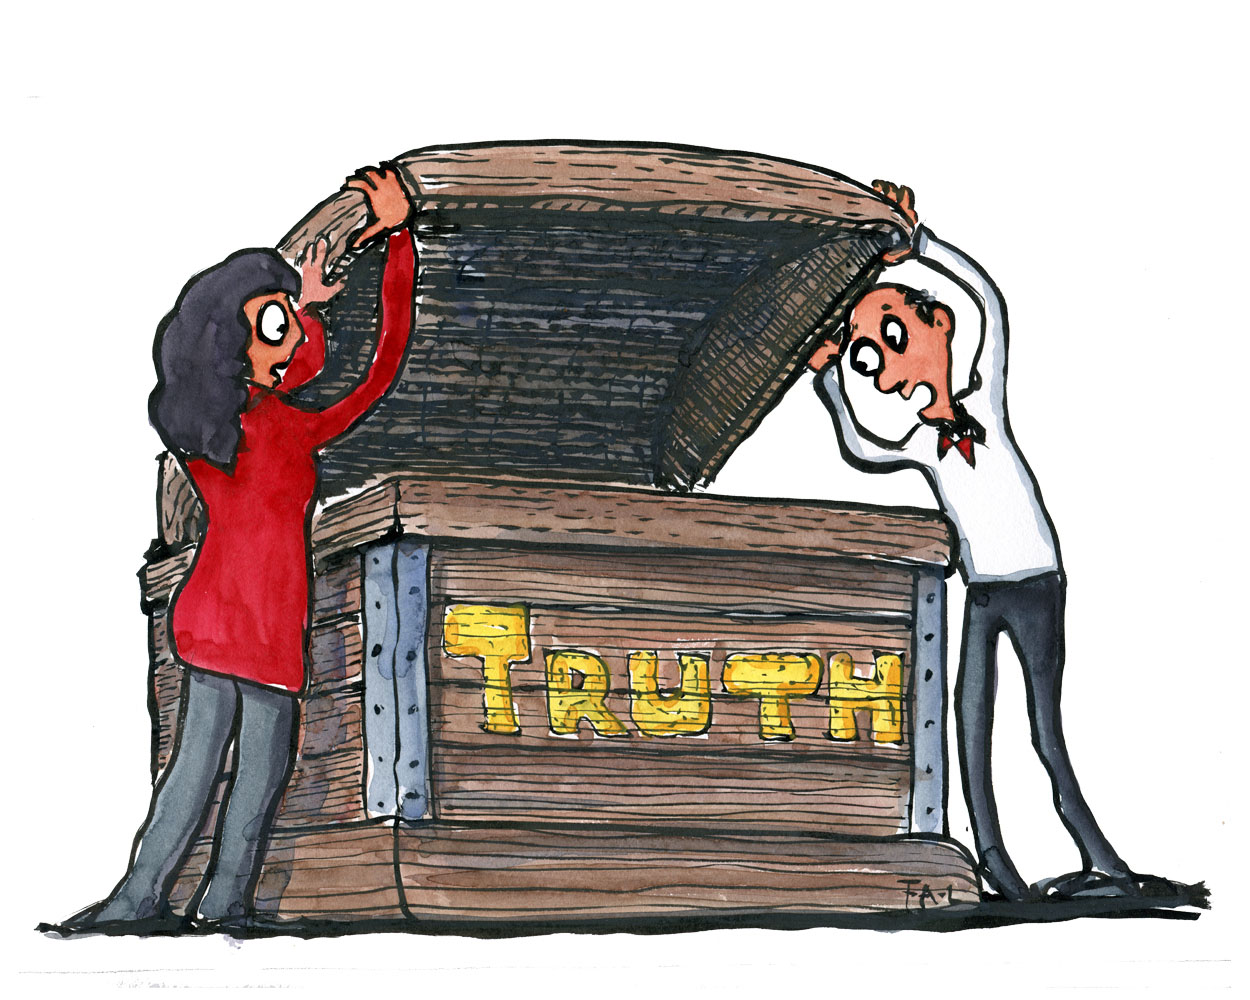 illustration of man and woman opening casket with TRUTH written on it. drawing by Frits Ahlefeldt